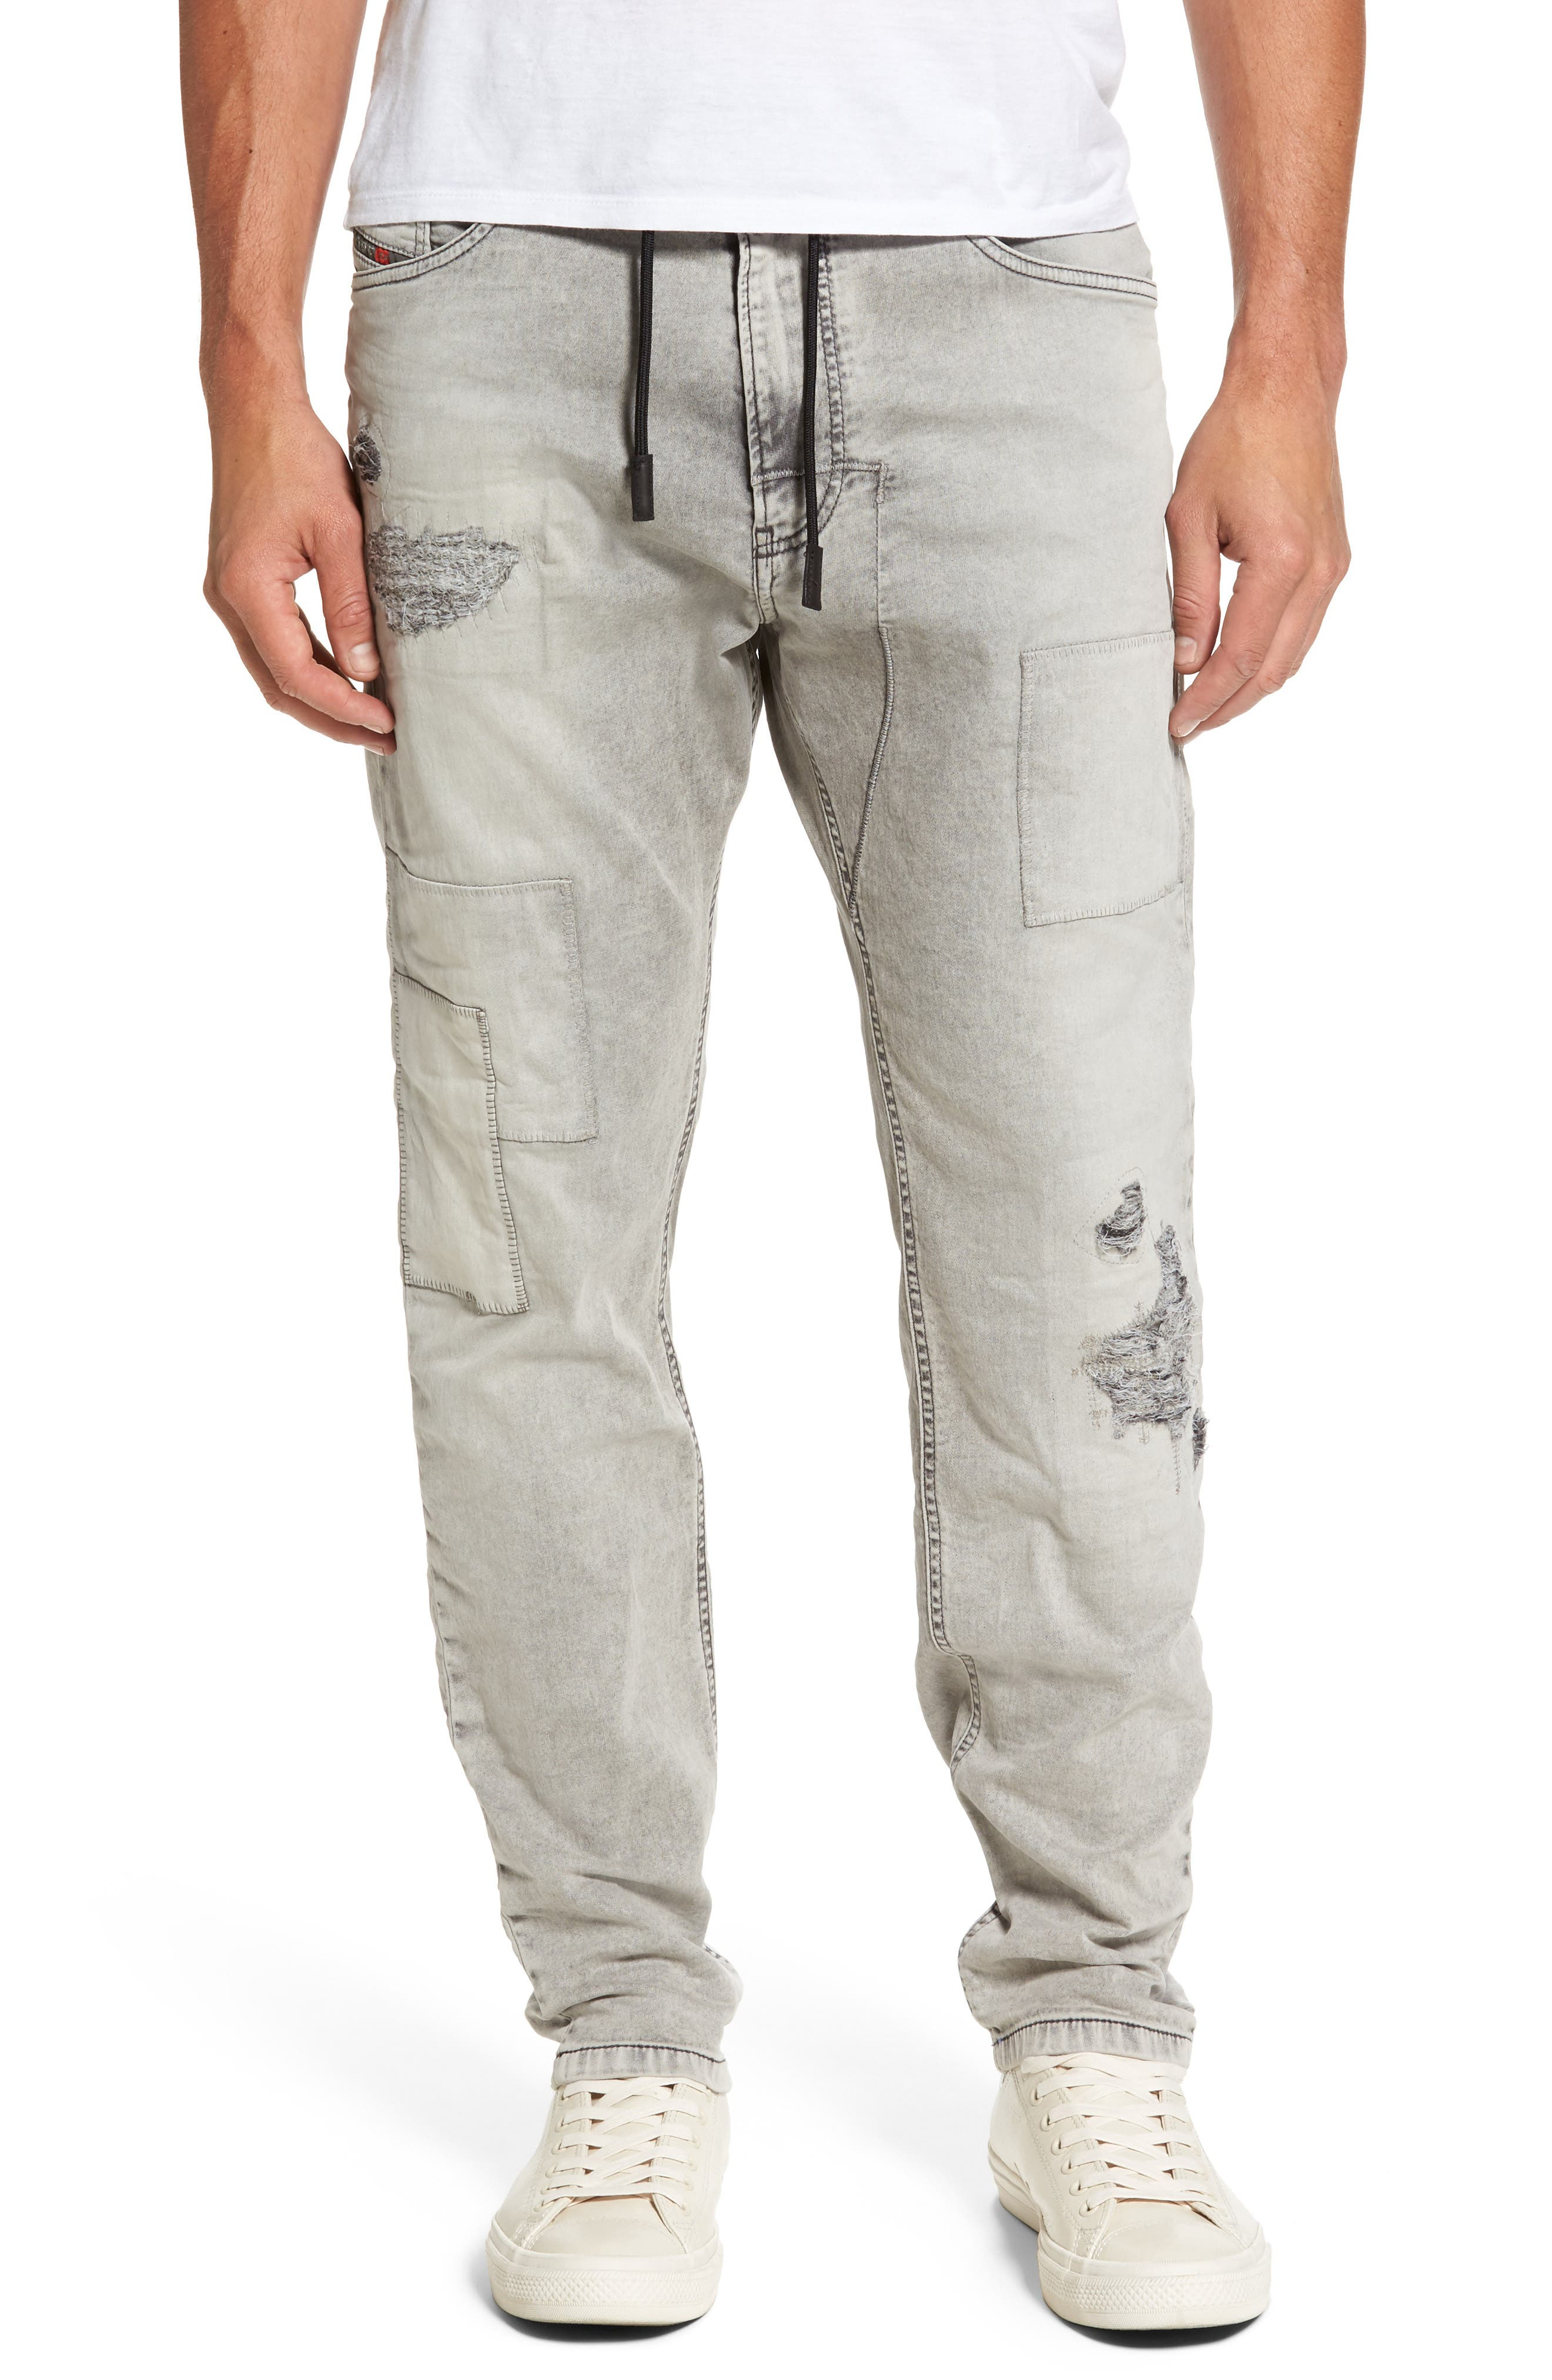 Narrot Slouchy Skinny Fit Jeans,                             Main thumbnail 1, color,                             008